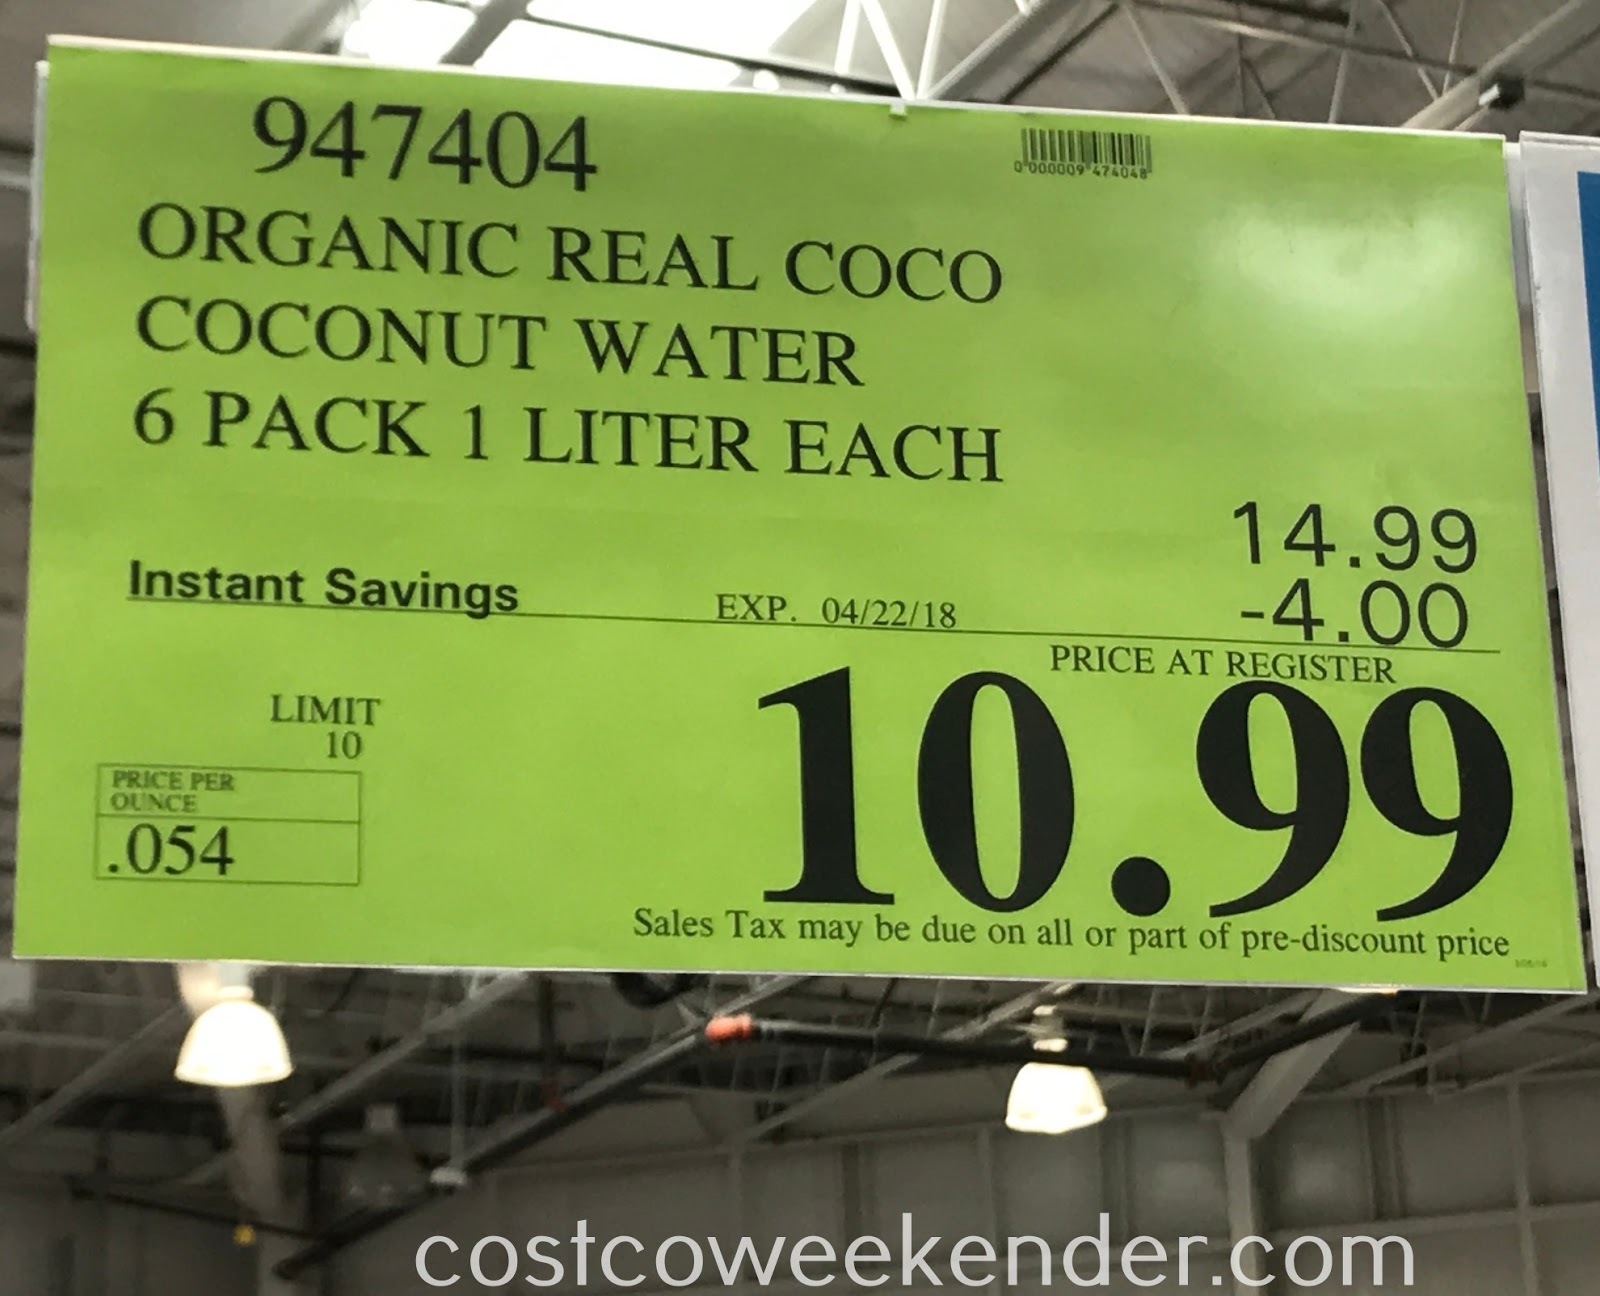 Deal for pack of 6 Real Coco Organic Pure Coconut Water at Costco